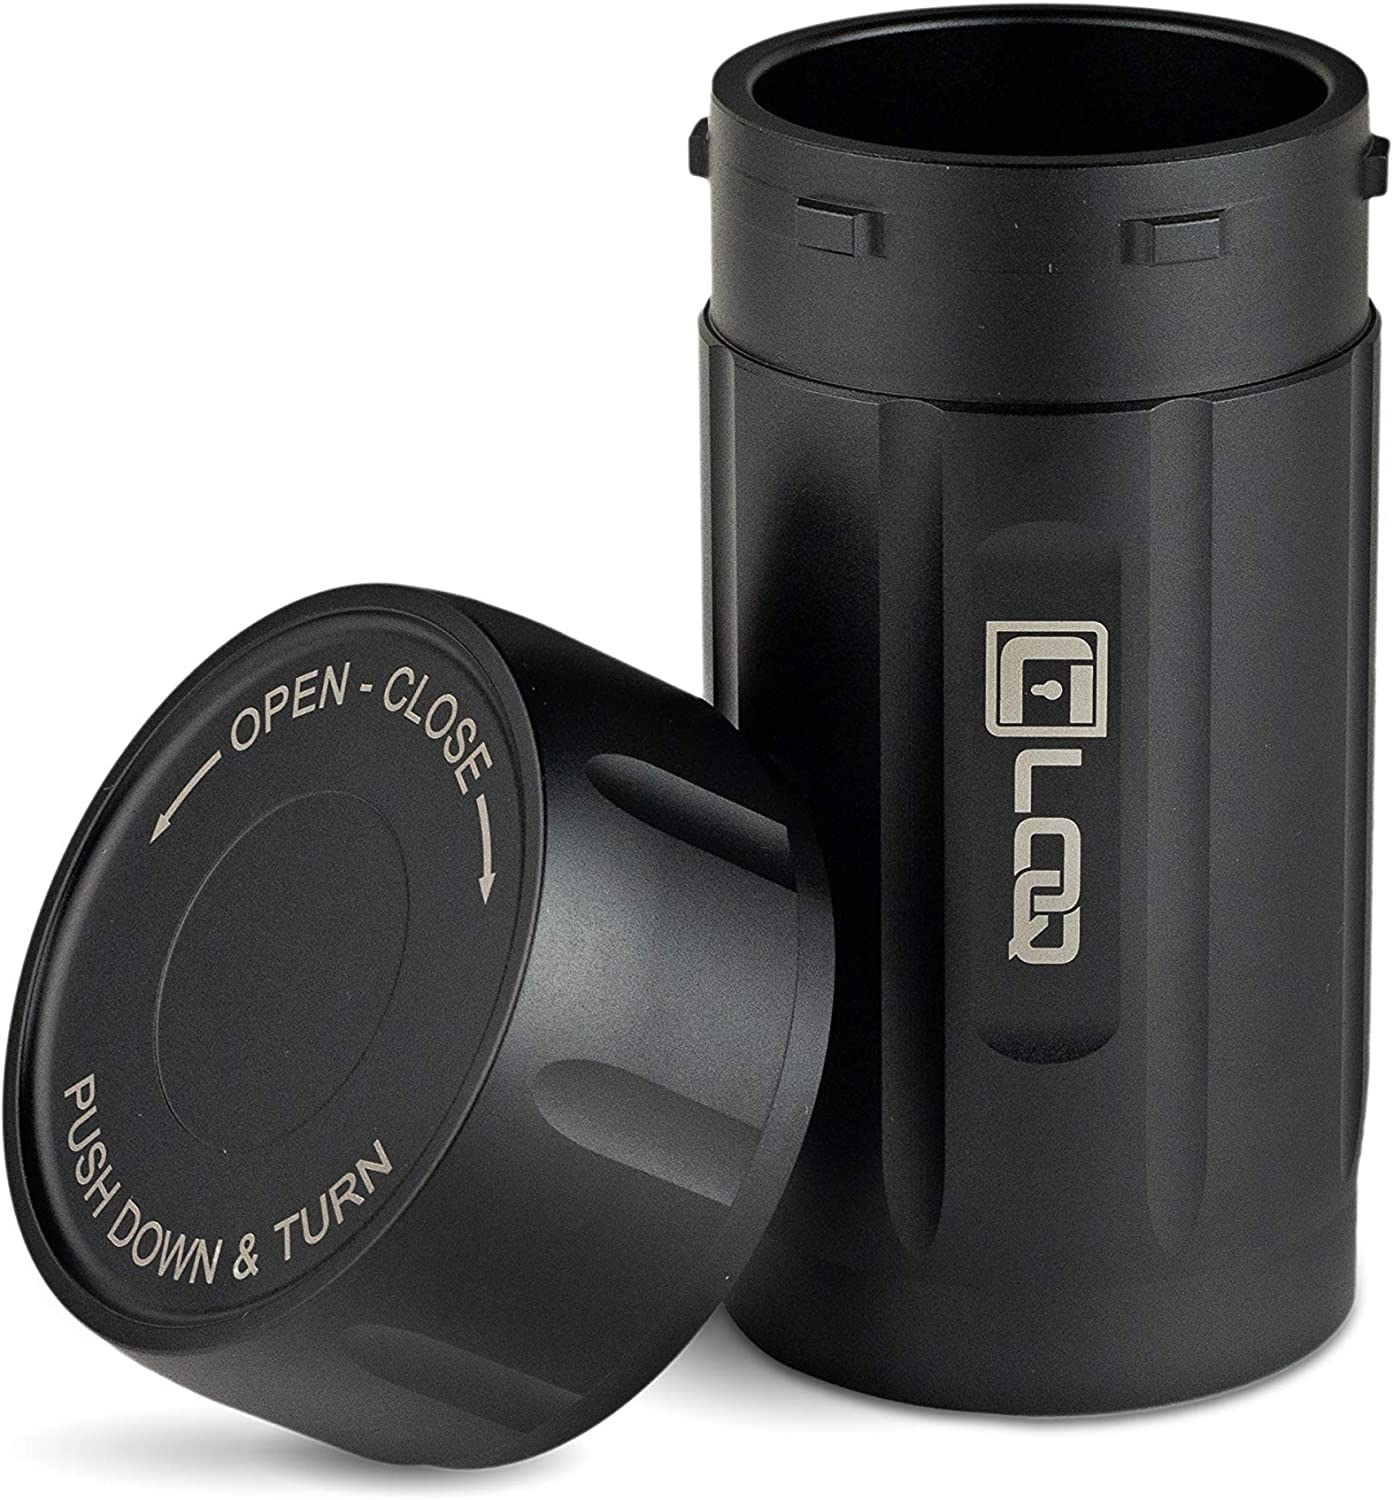 Canniloq – 120cc Onyx Black - Aircraft Grade Aluminum Odor Smell Proof Container and Airtight Locking Stash Jar for Herbs, Coffee, Spices, Tea and Other Dry Goods